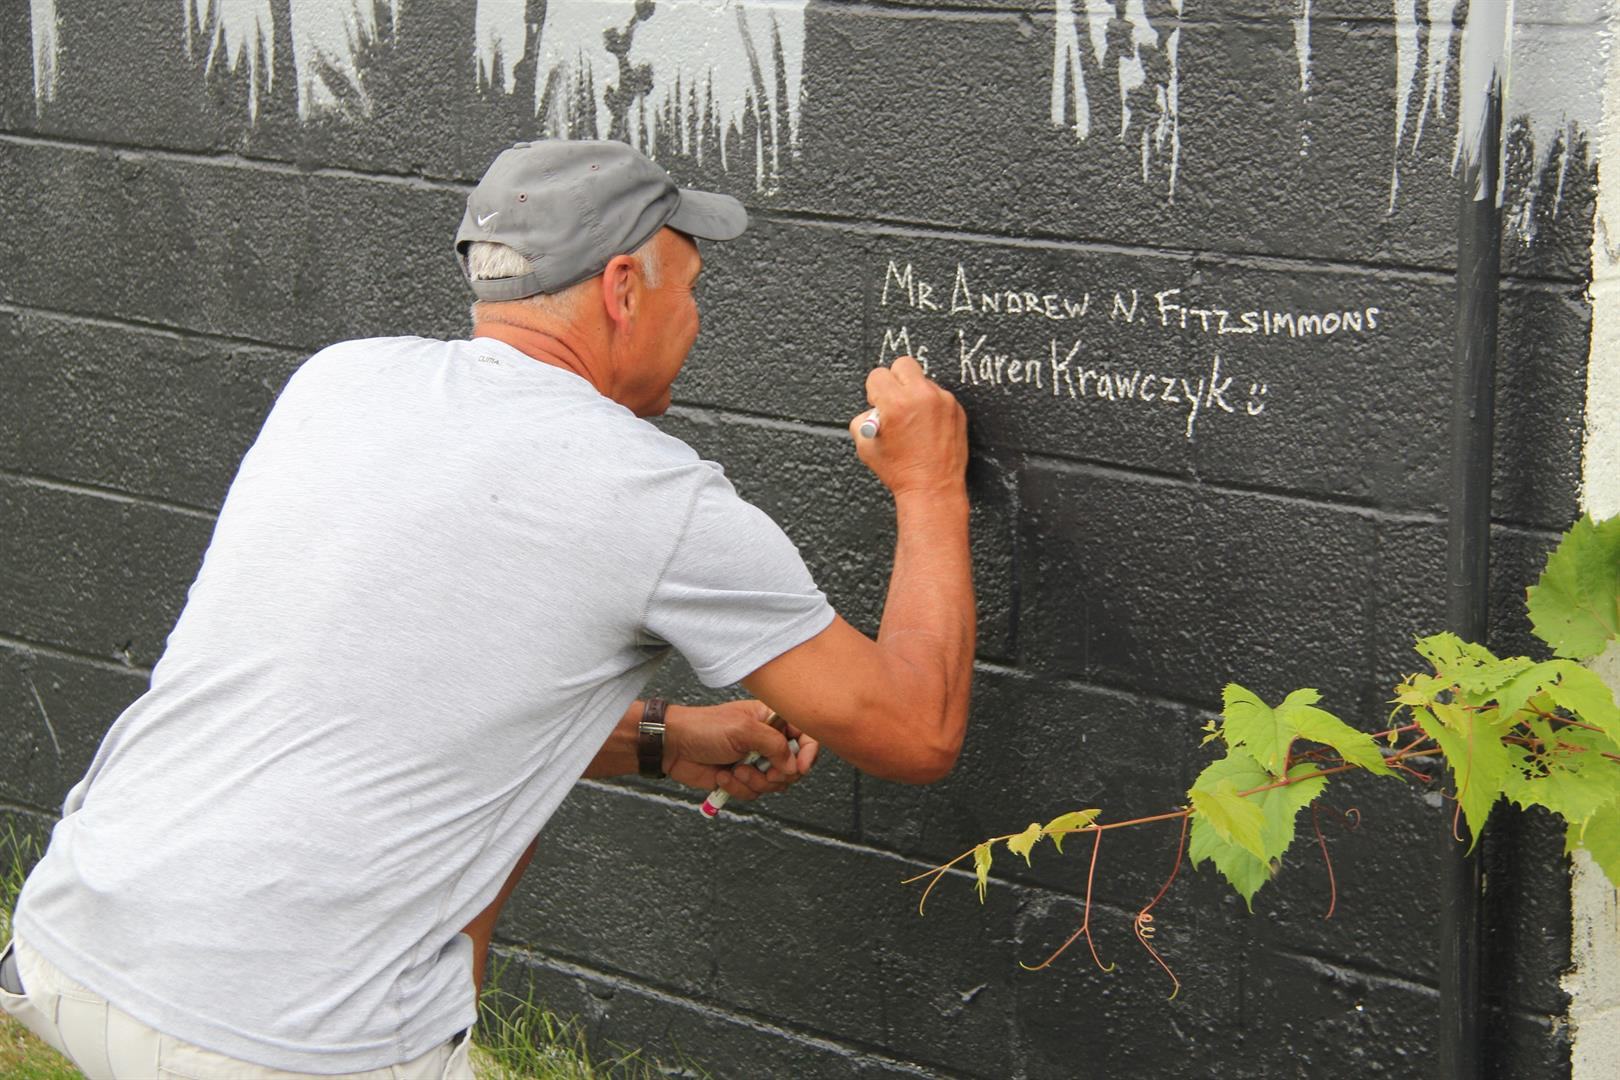 mister zanot signs the mural wall